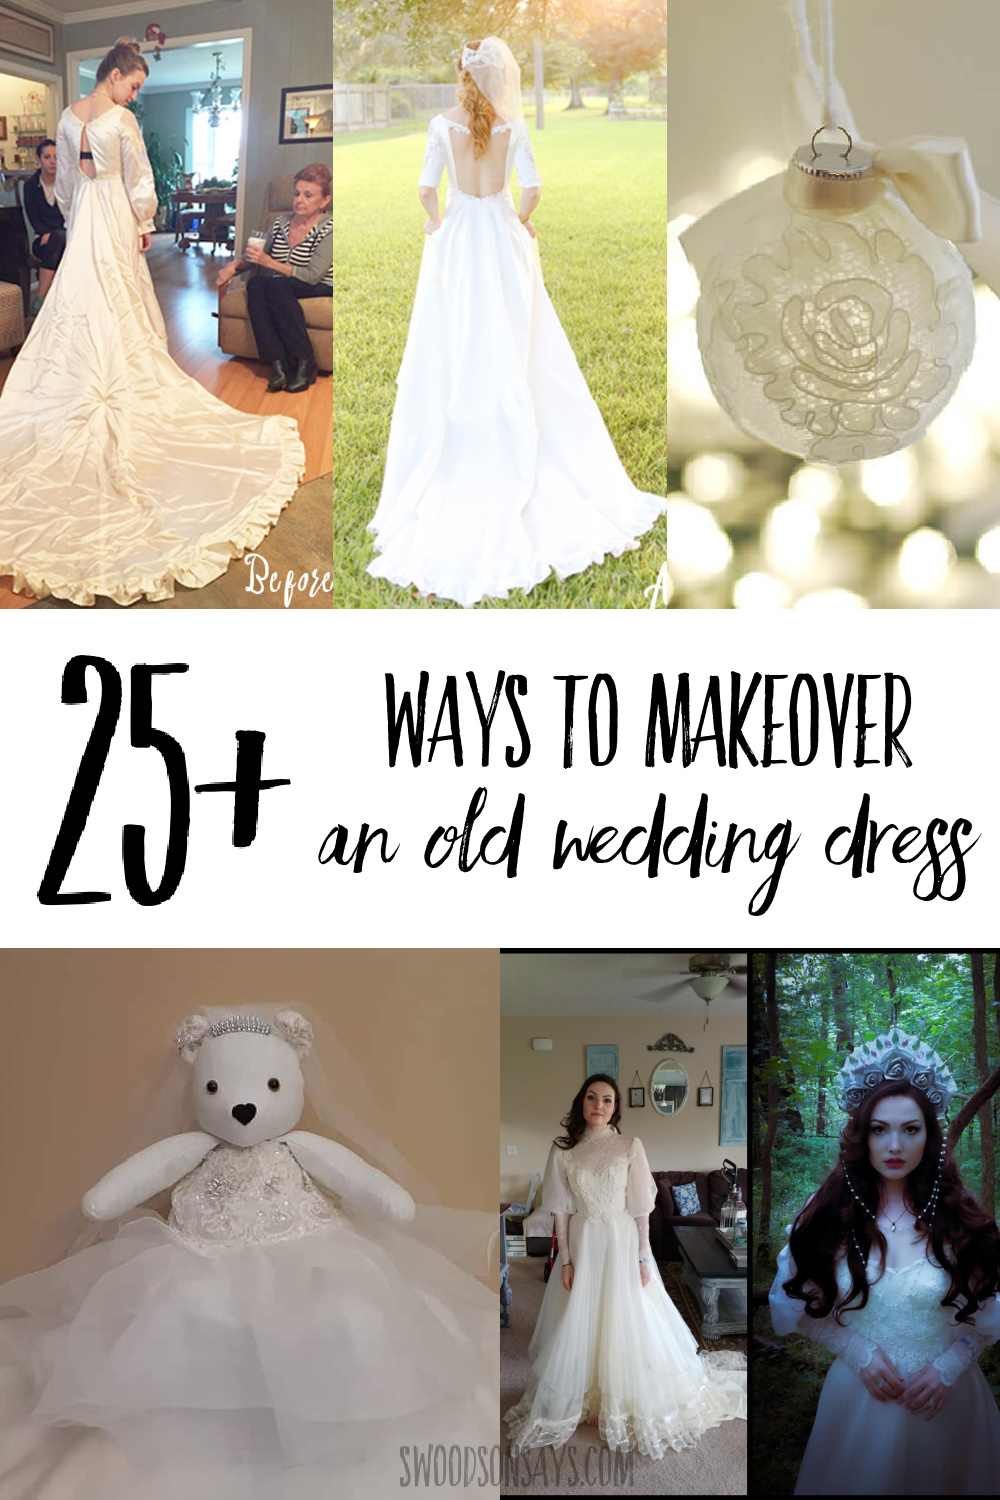 ways to makeover an old wedding dress